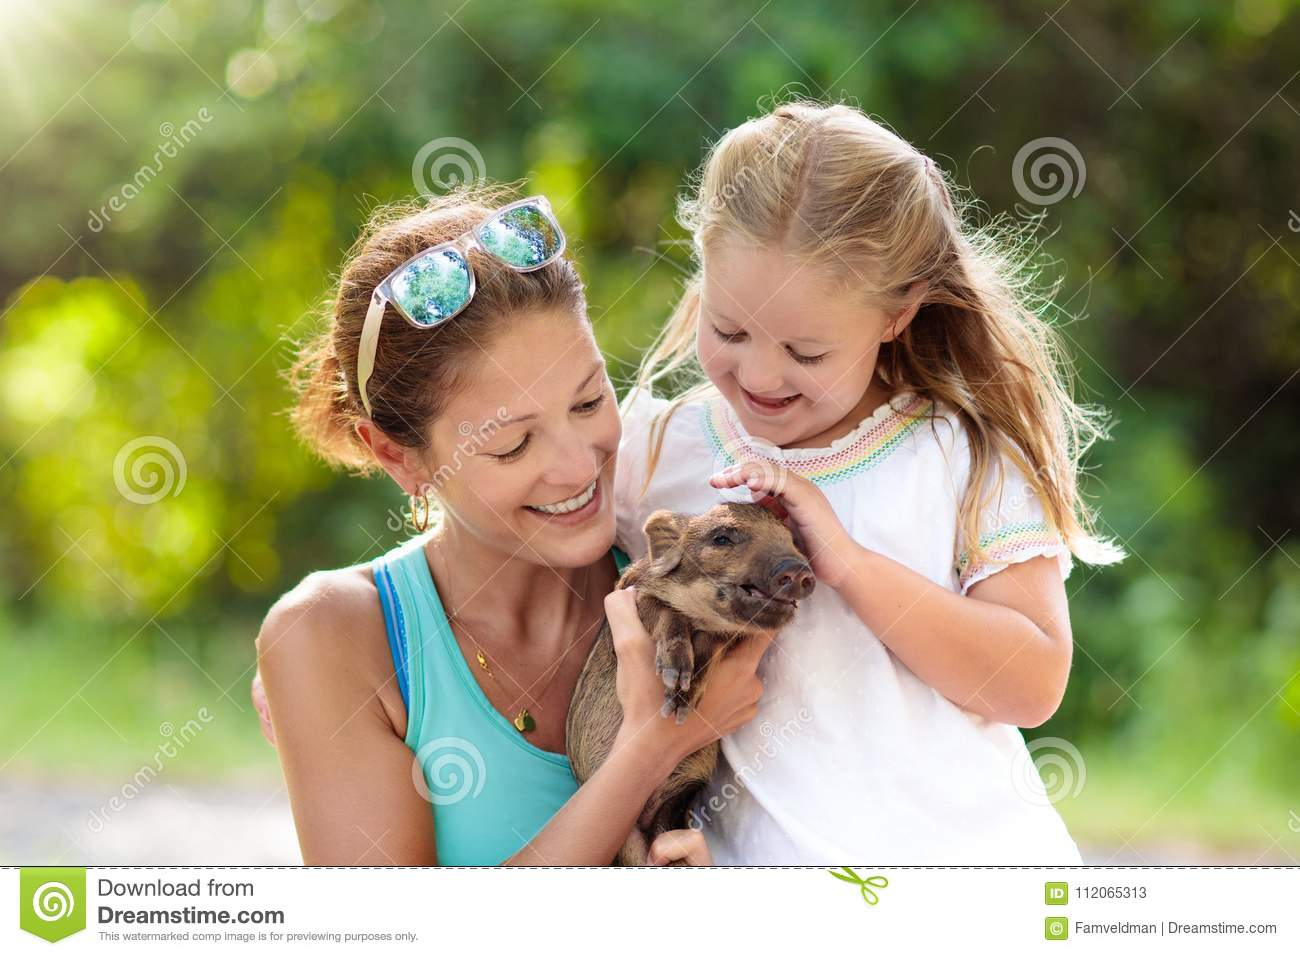 Kids And Farm Animals Child With Baby Pig At Zoo Stock Image